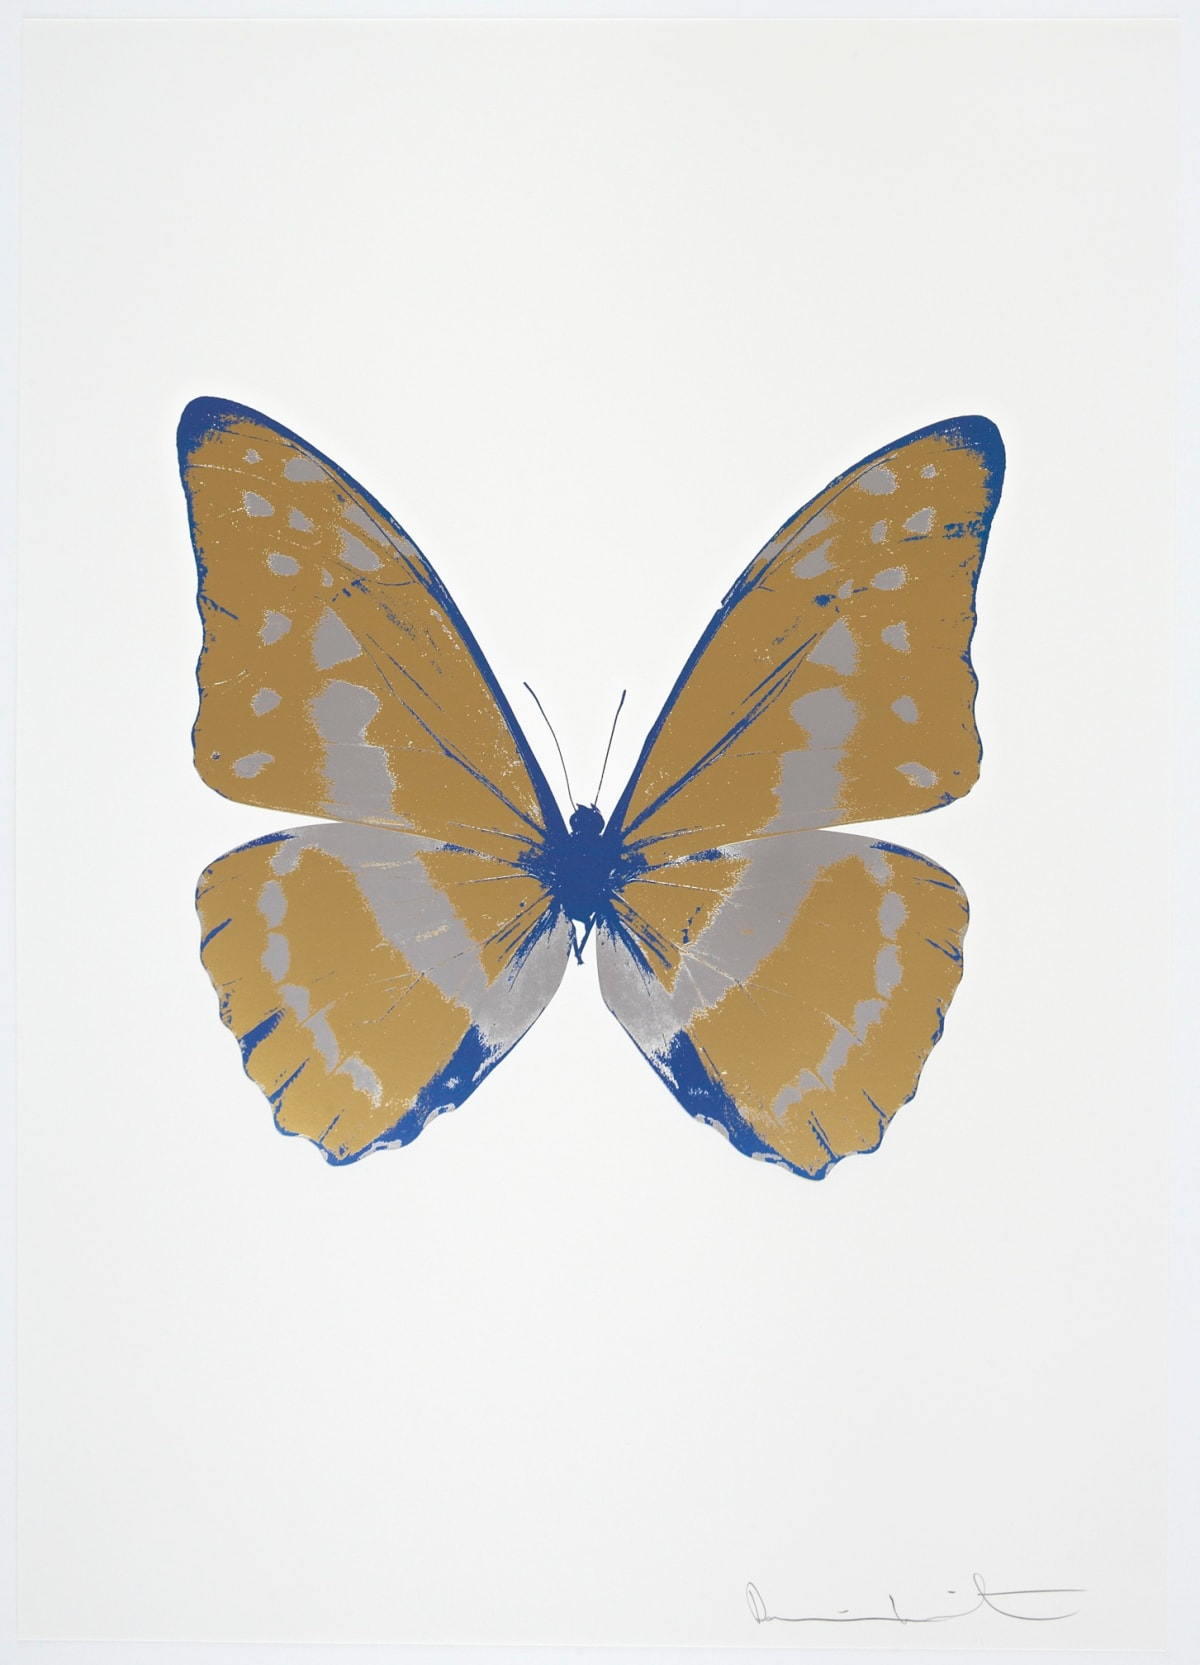 Damien Hirst The Souls III - Hazy Gold/Silver Gloss/Frost Blue, 2010 3 colour foil block on 300gsm Arches 88 archival paper. Signed and numbered. Published by Paul Stolper and Other Criteria 72 x 51cm OC7912 / 660-15 Edition of 15